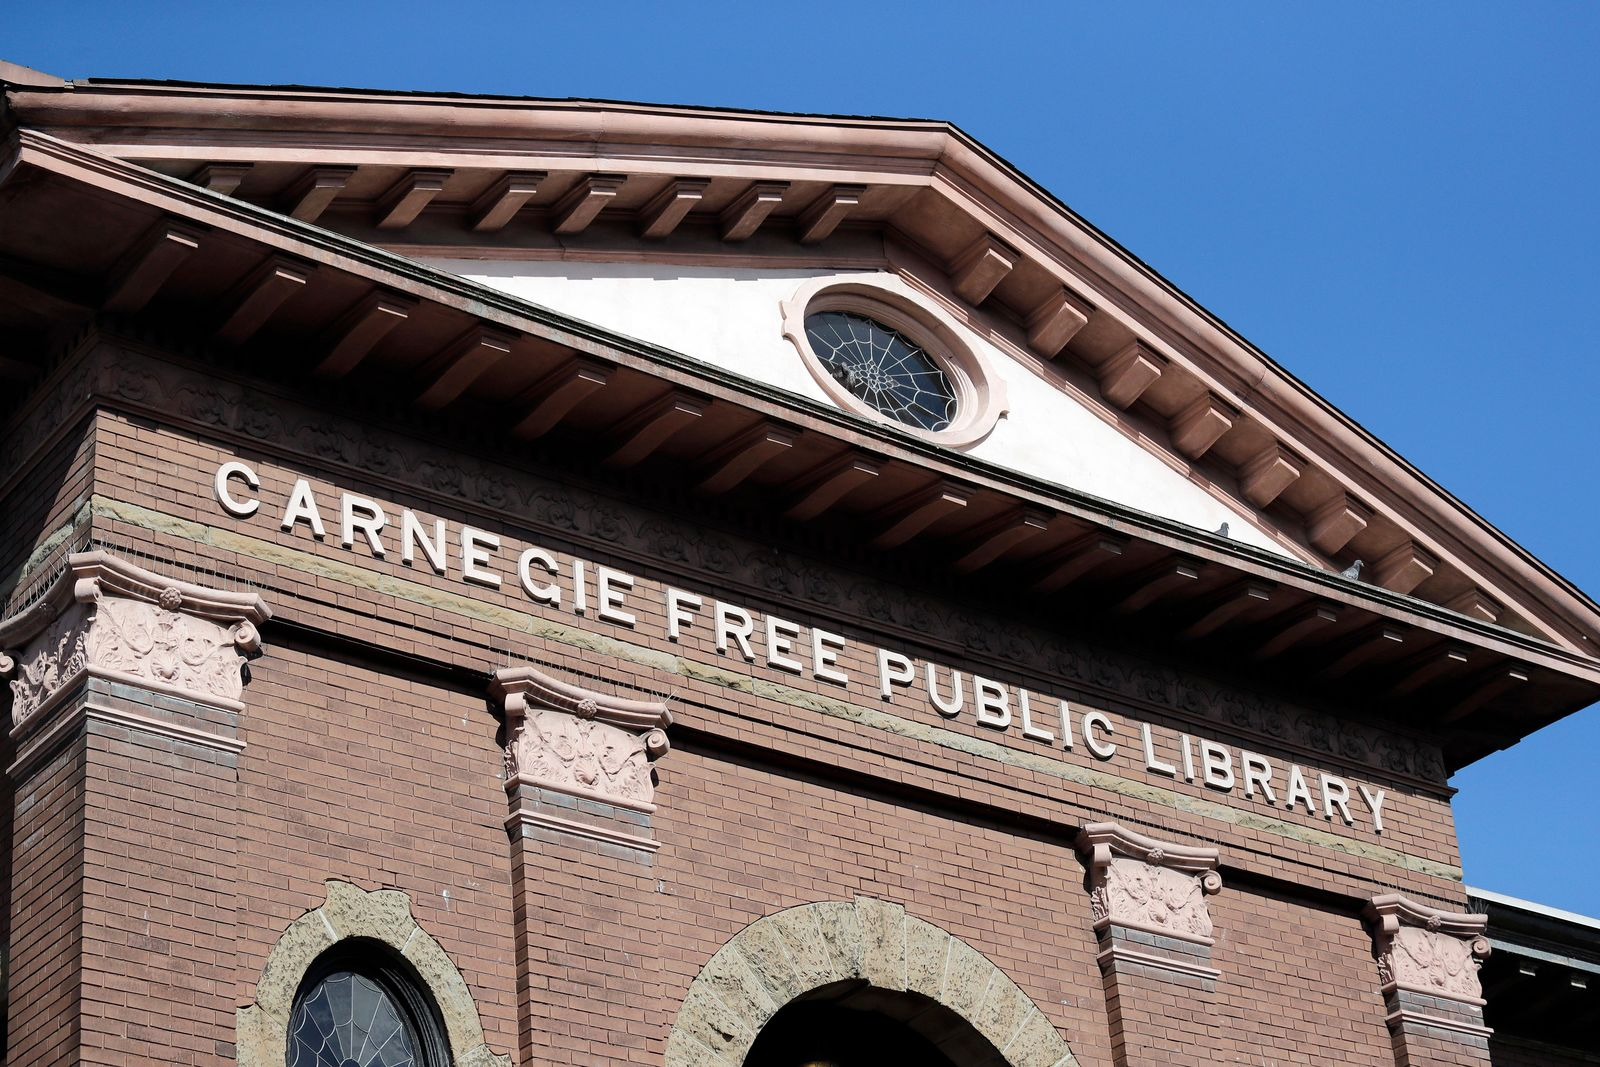 In this photo taken Wednesday, Oct. 10, 2018, the Carnegie name remains on what was the first major branch of the Seattle public library system, built with funds from philanthropist Andrew Carnegie, in Seattle. (AP Photo/Elaine Thompson)